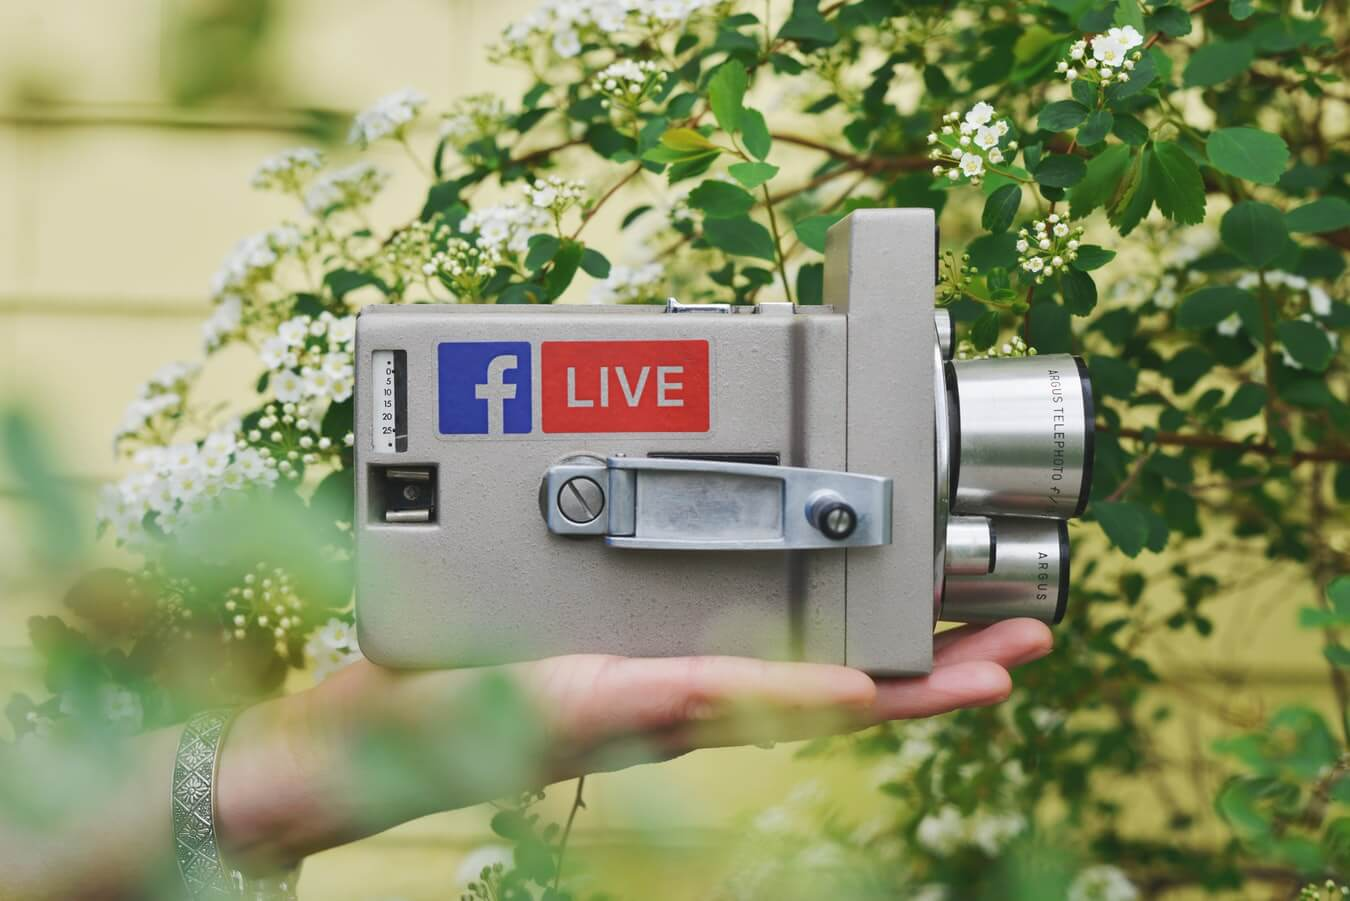 Why your brand should use live streaming as a marketing channel